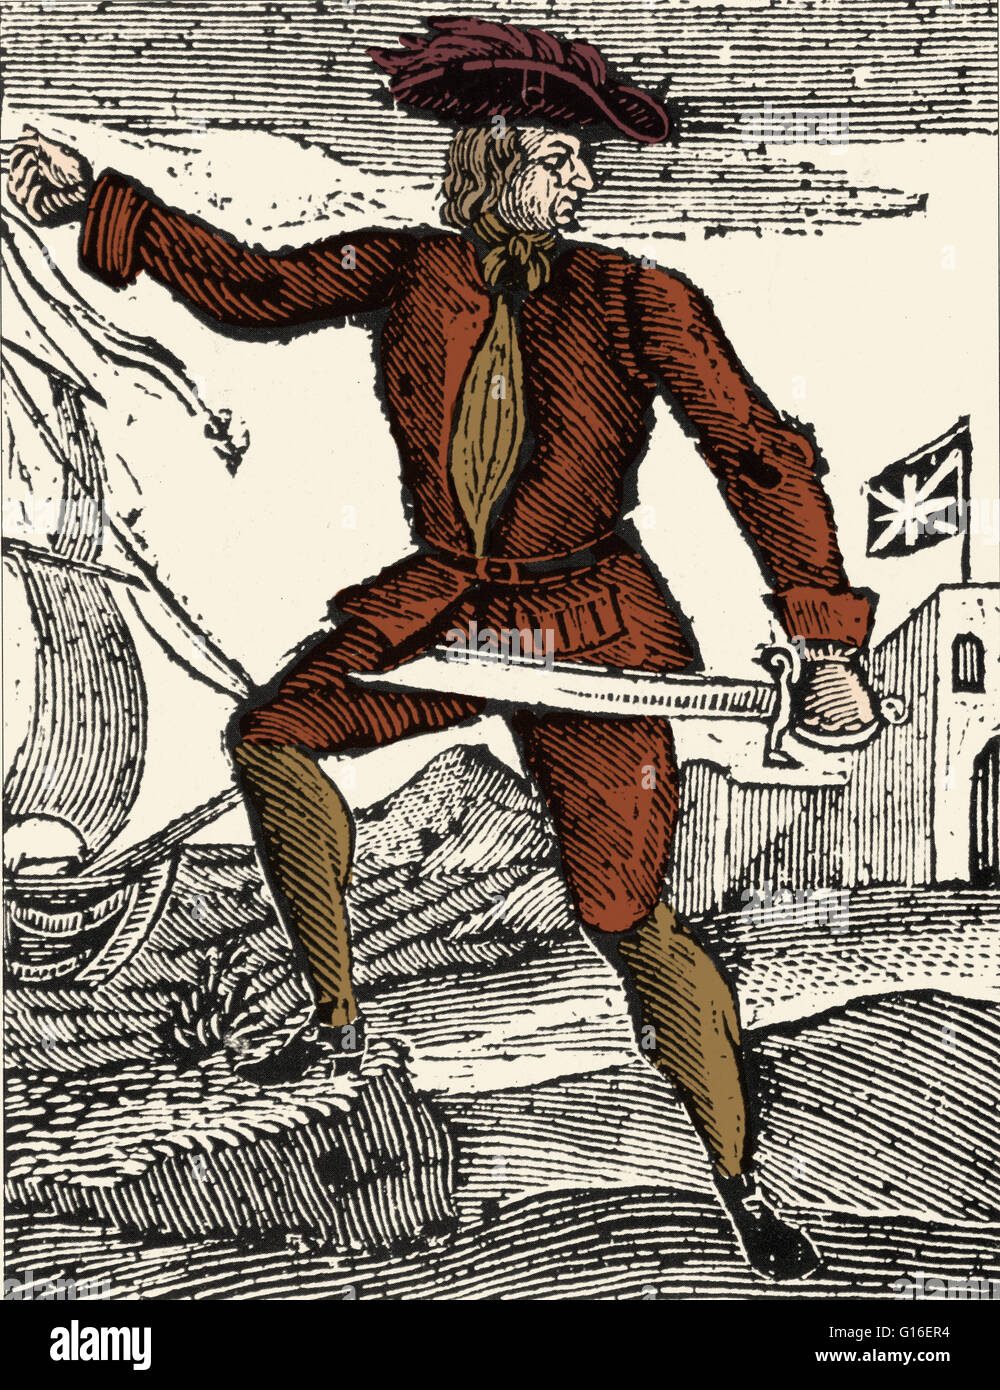 Colorized artwork of Howell Davis (1690 - June 19, 1719), a Welsh pirate. His pirate career lasted only 11 months. - Stock Image